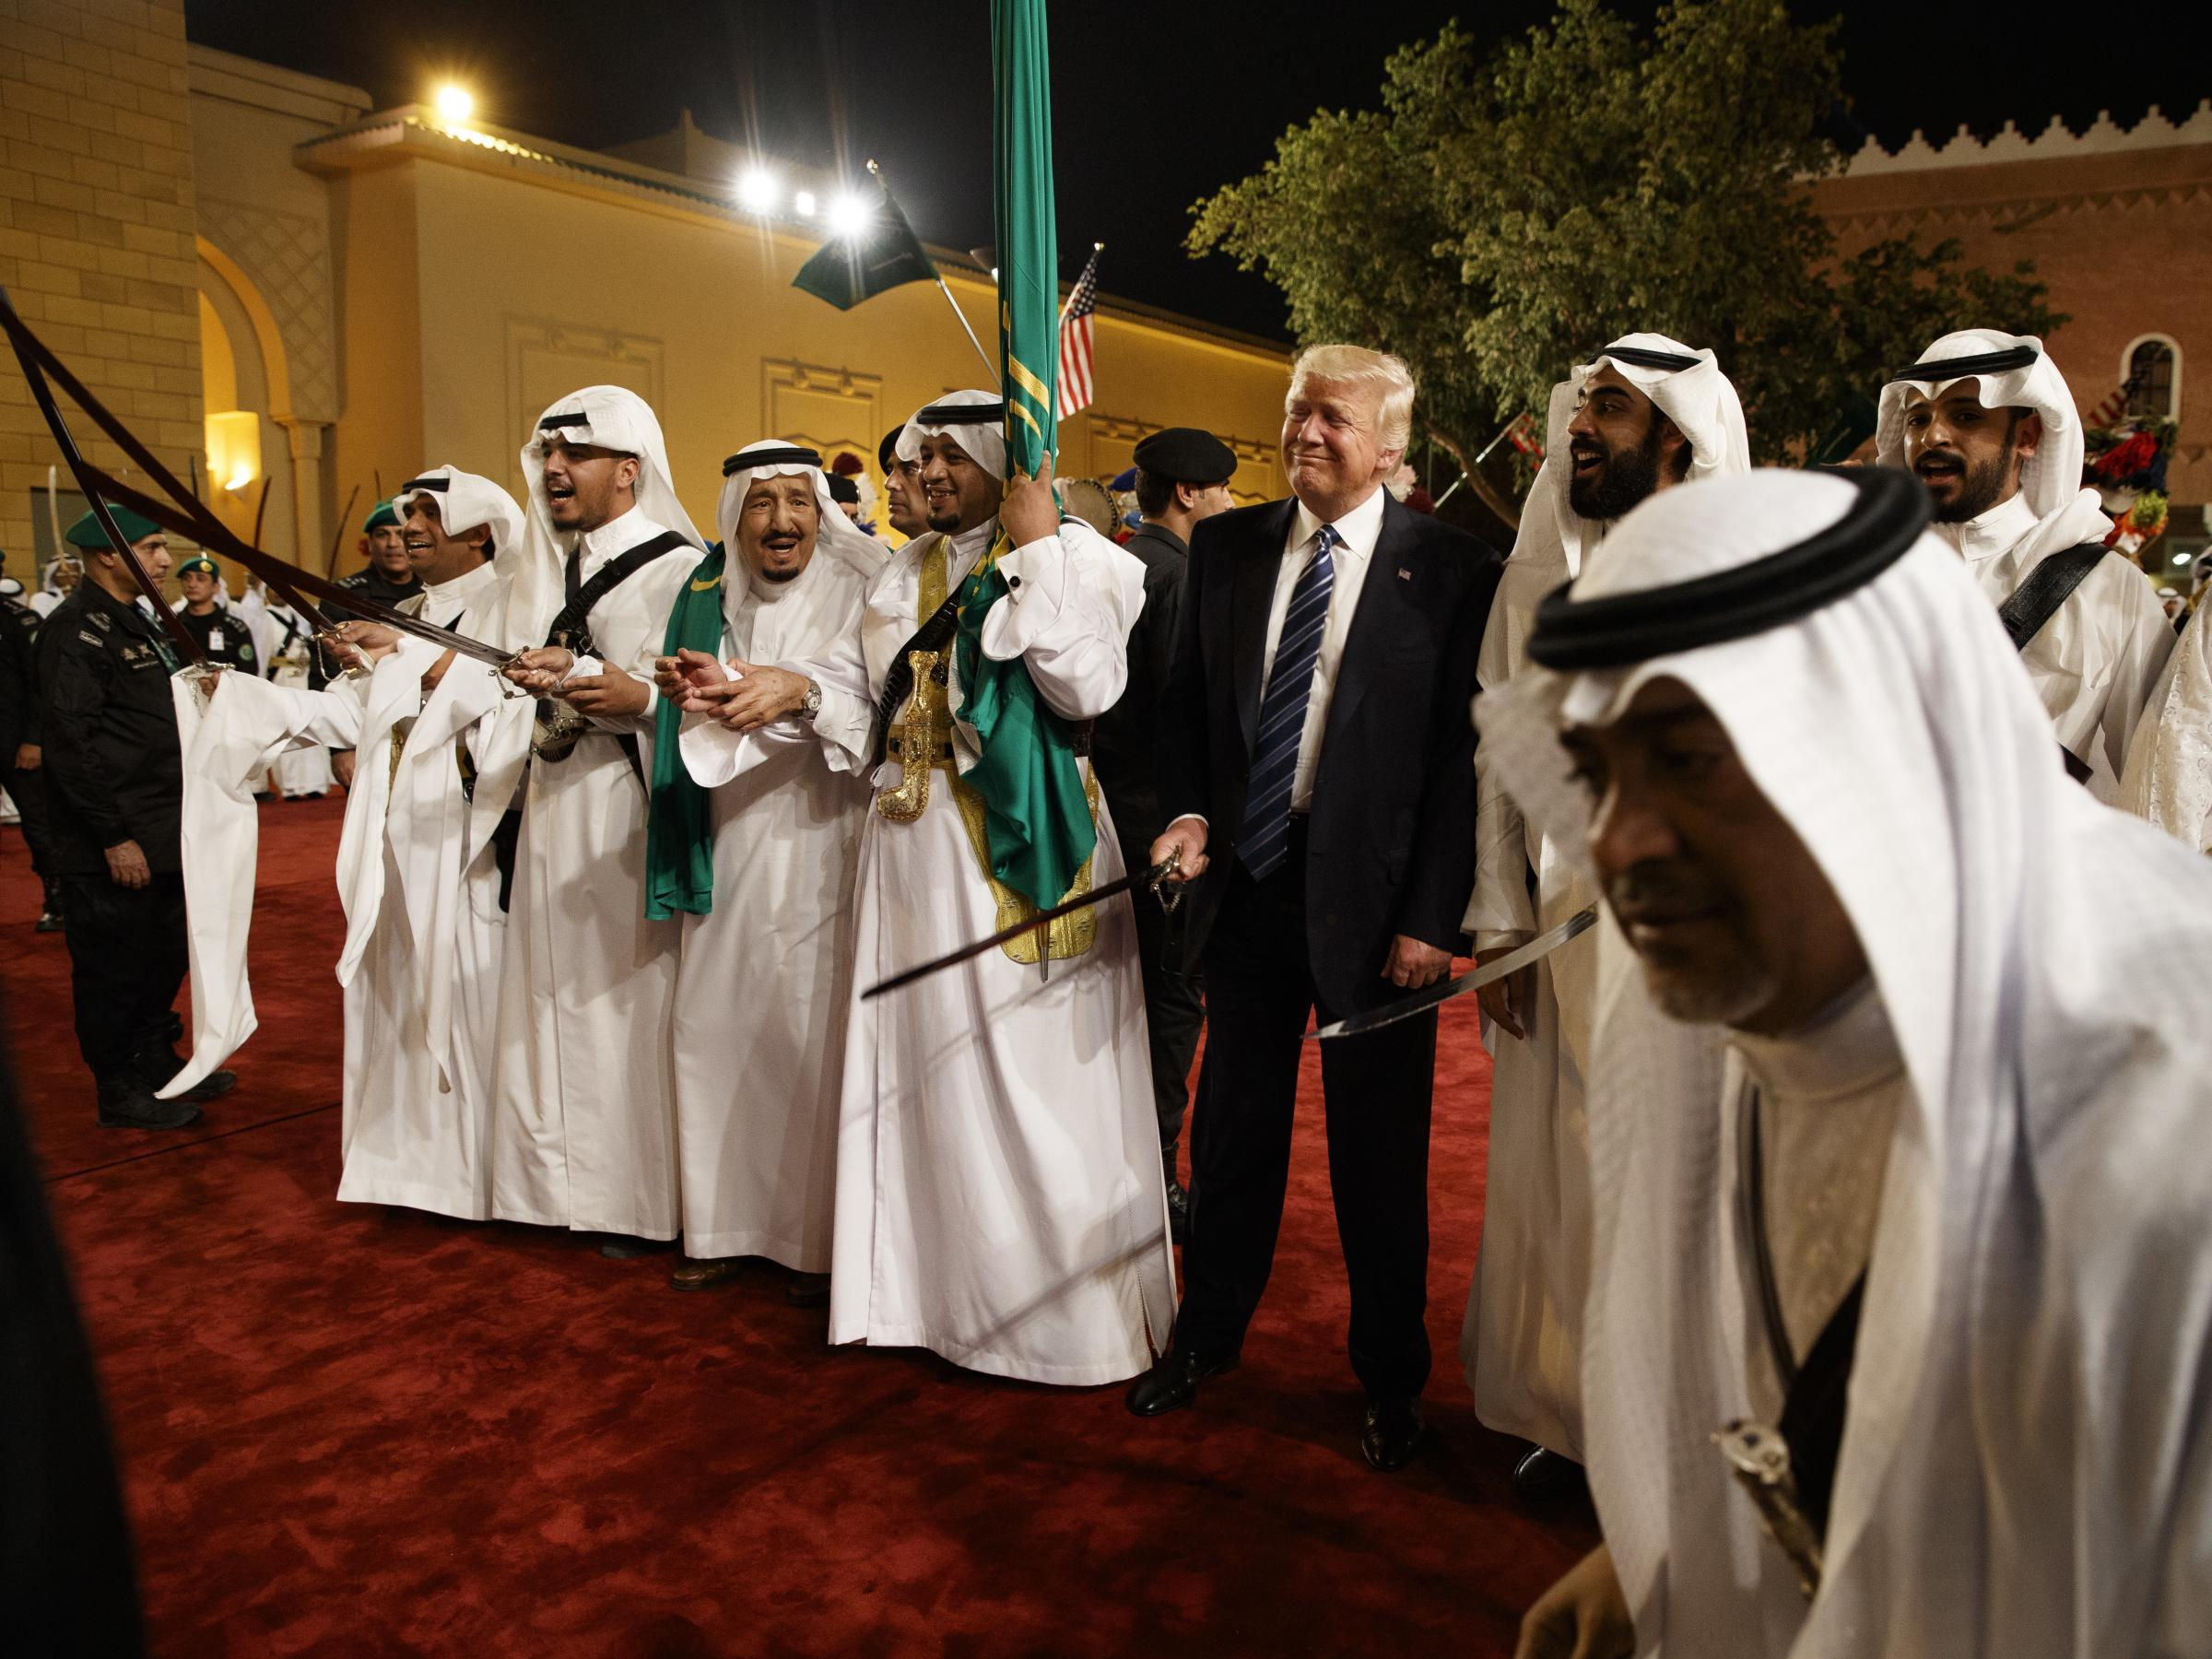 Melania, Ivanka Skip Headscarves in Saudi Arabia-Despite Trump Criticism in 2015